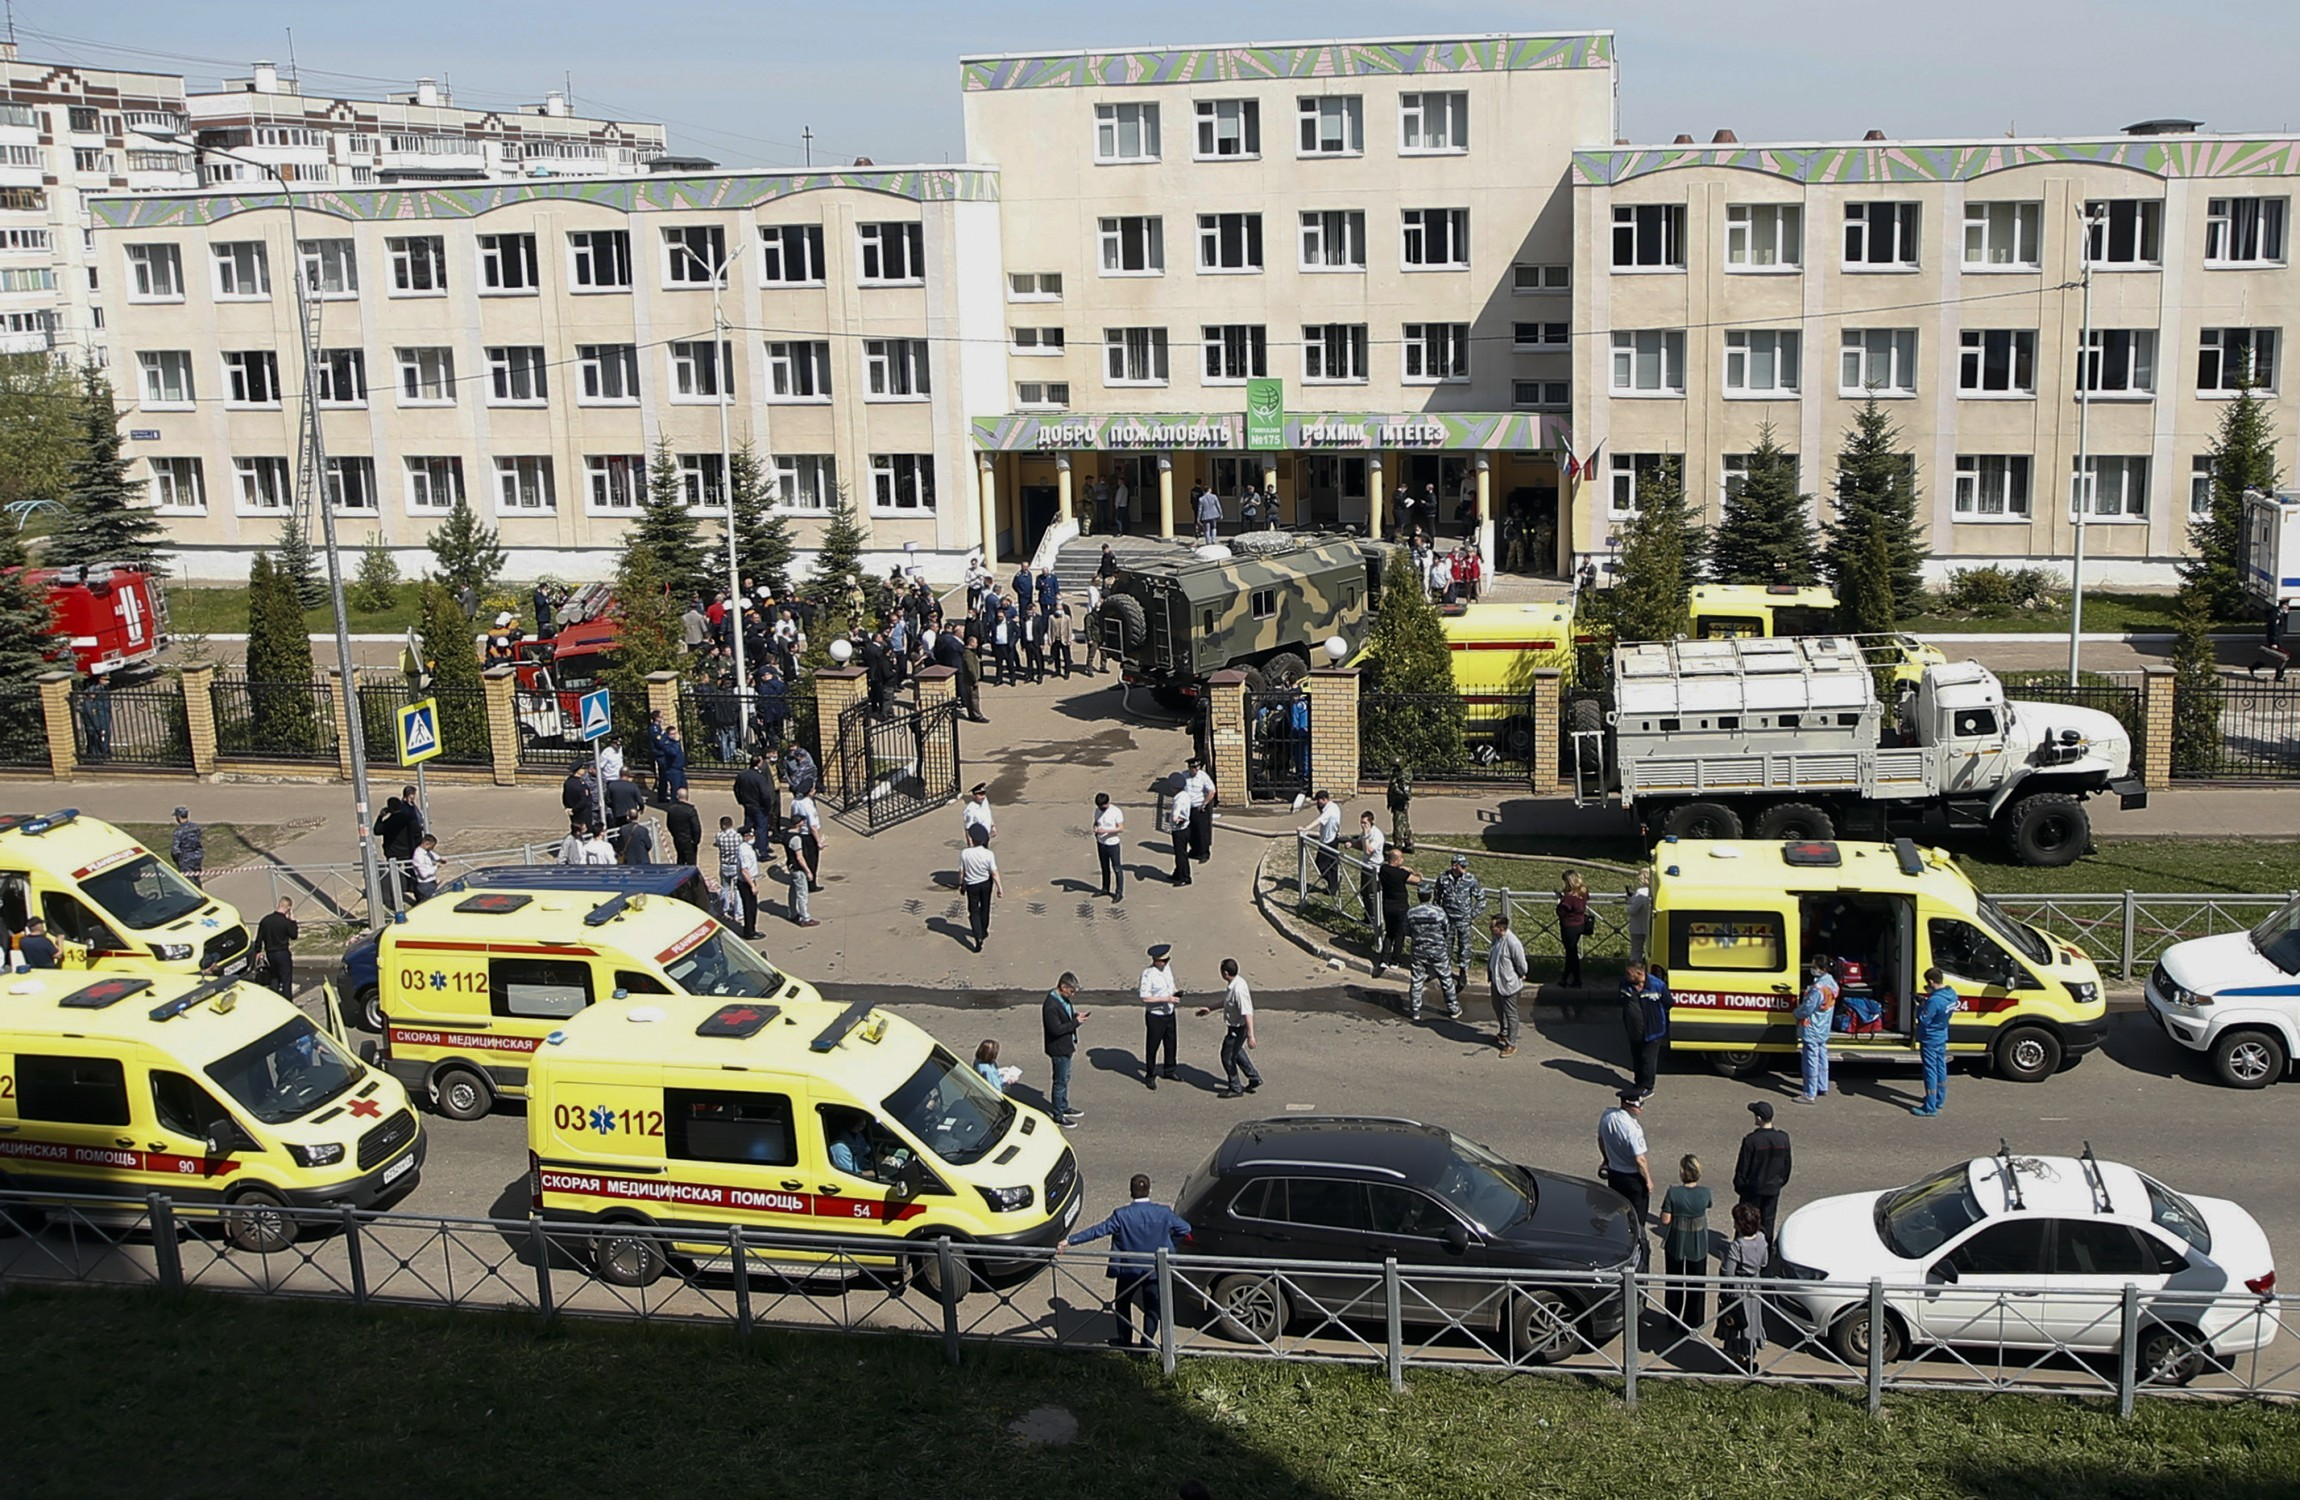 At least 11 killed in school shooting in Russian Federation, including children